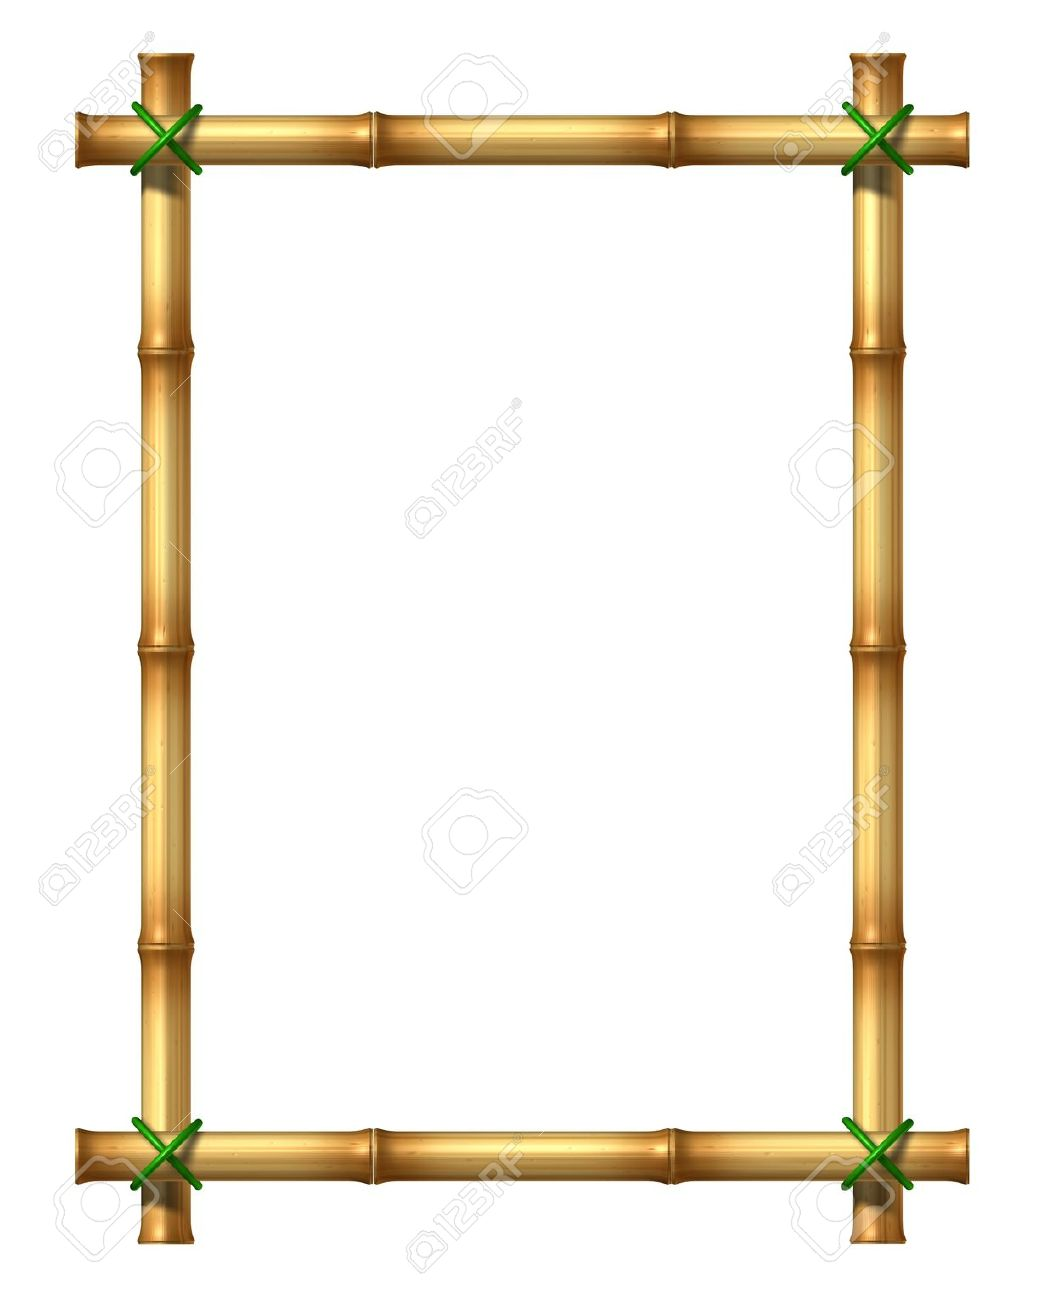 Bamboo Sticks Blank Frame Stock Photo, Picture And Royalty Free ...